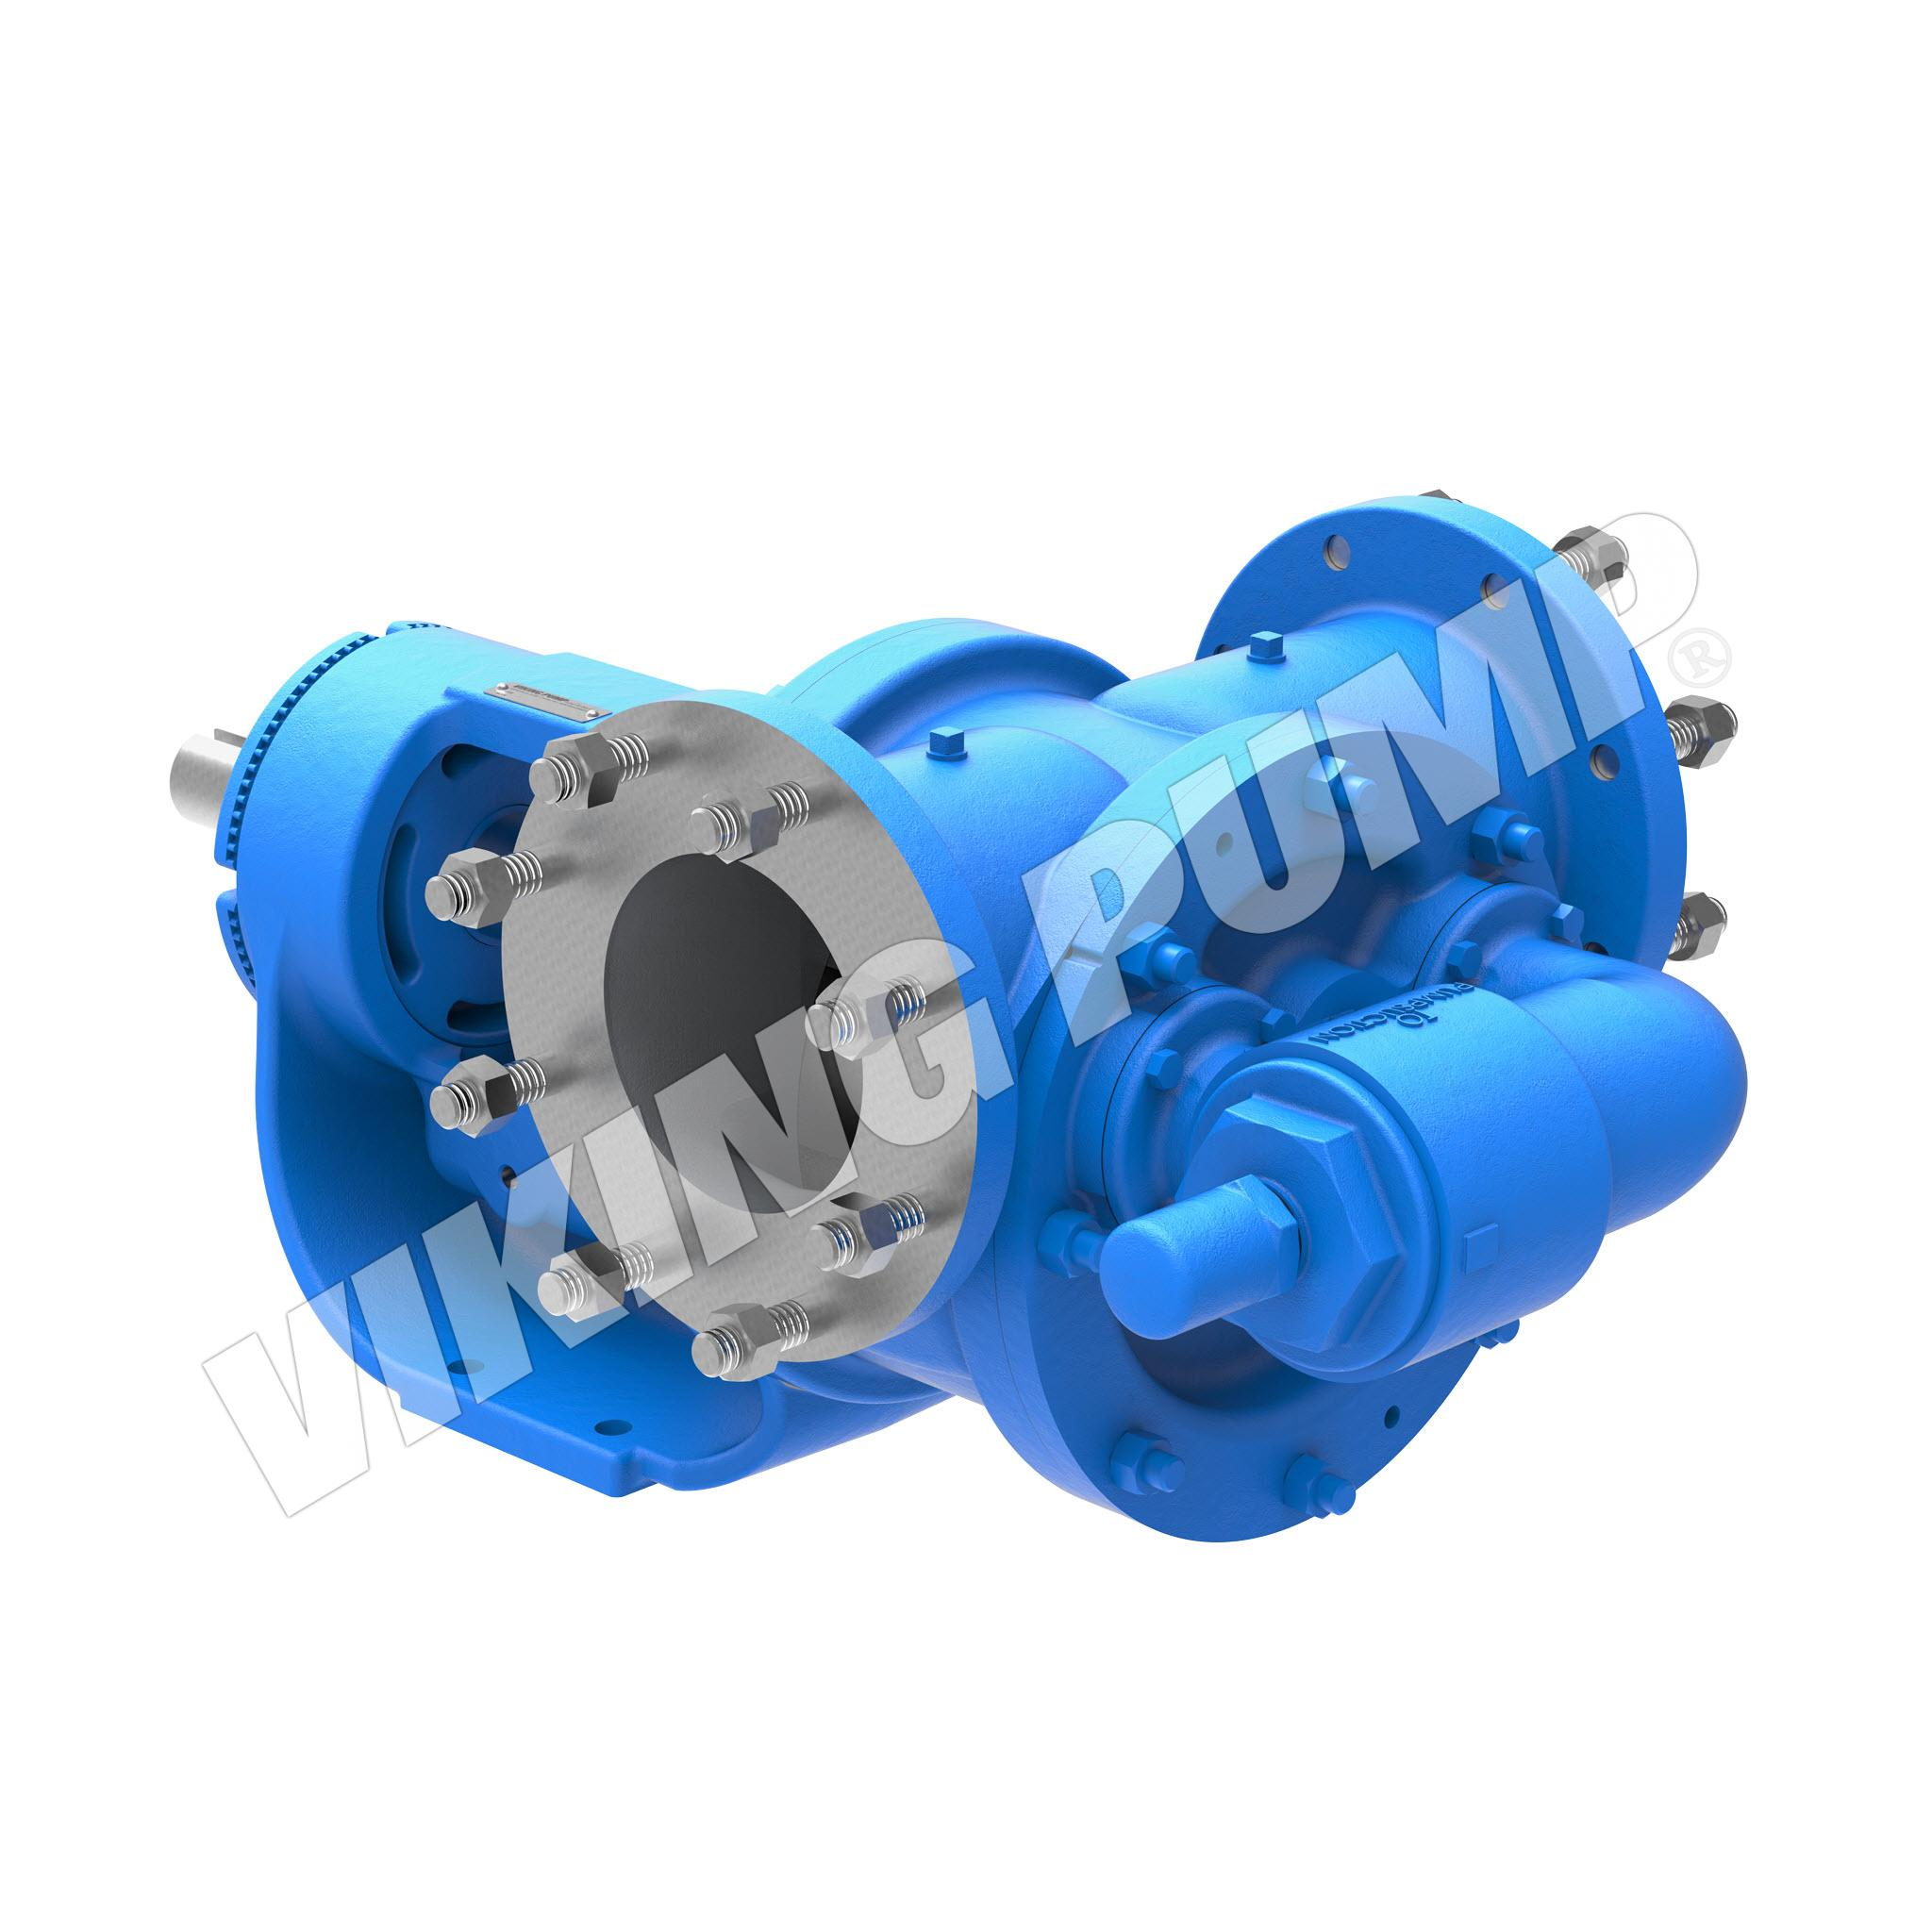 Model QS4124B, Foot Mounted, Mechanical Seal, Relief Valve Pump